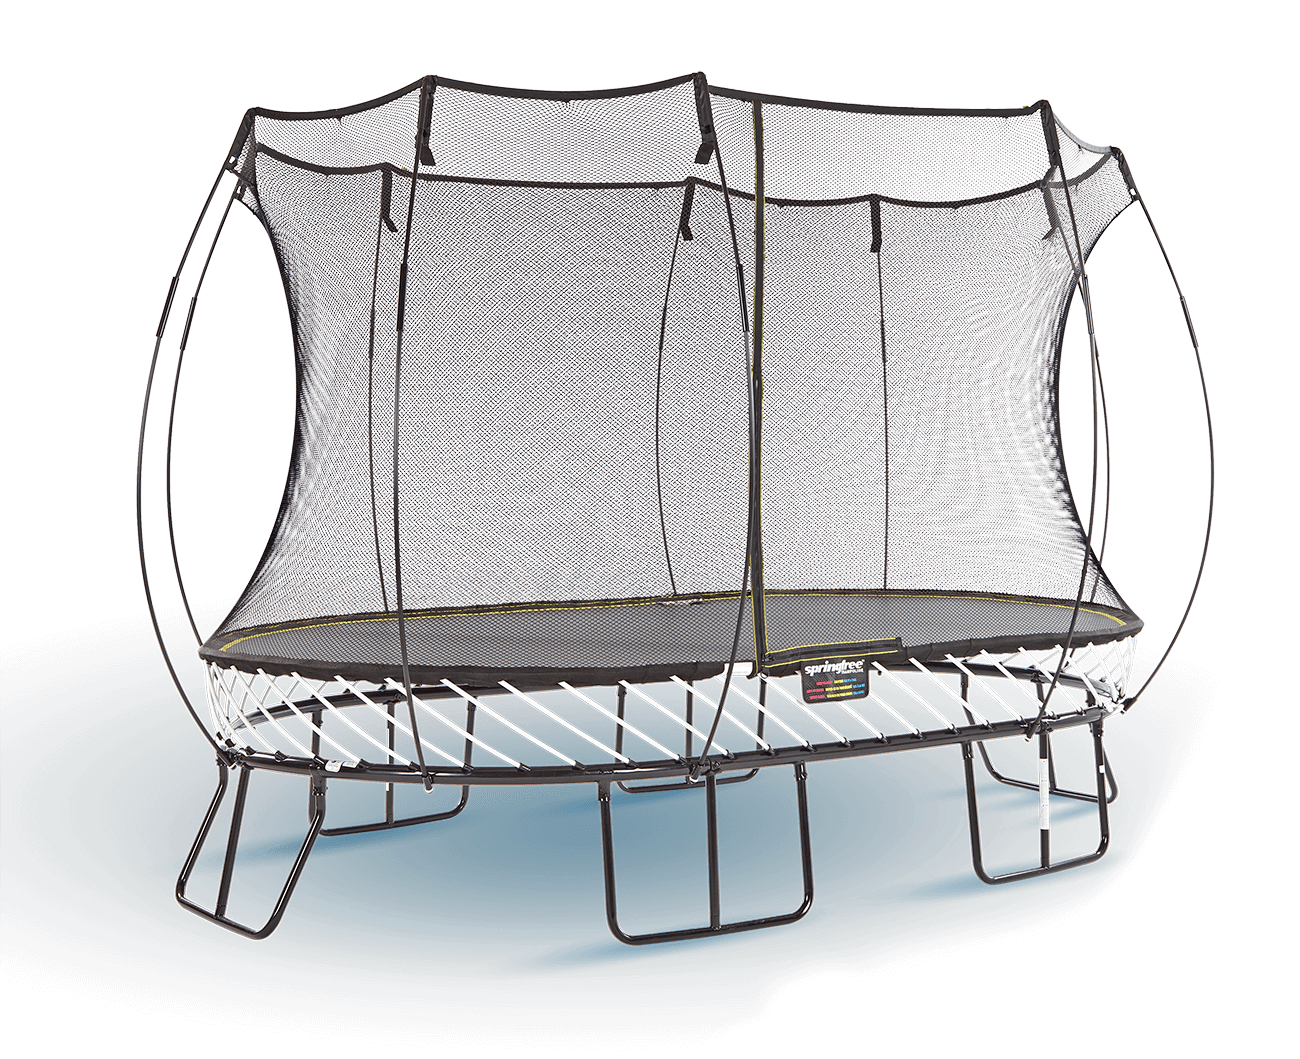 Springfree Trampoline Engineered For Safety Built To Last Single Speed Spa Circulation Pump Wiring Diagram Choose Your